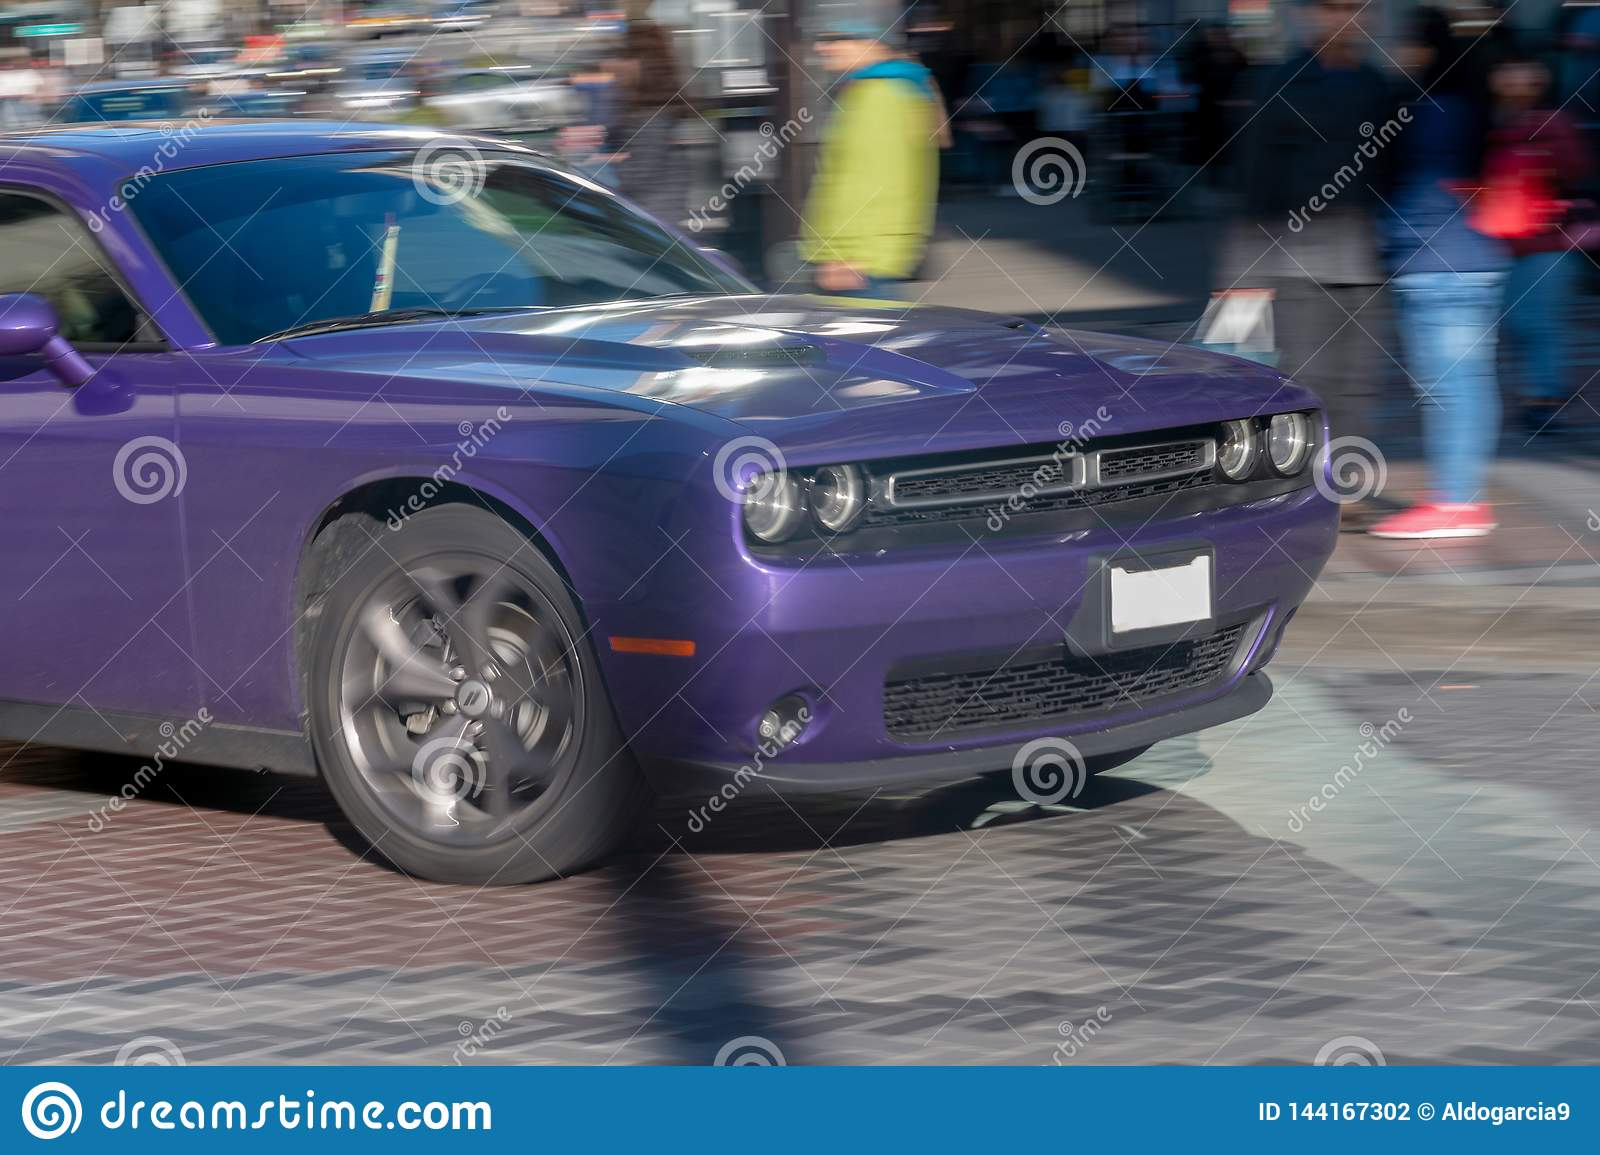 Purple Challenger in movement